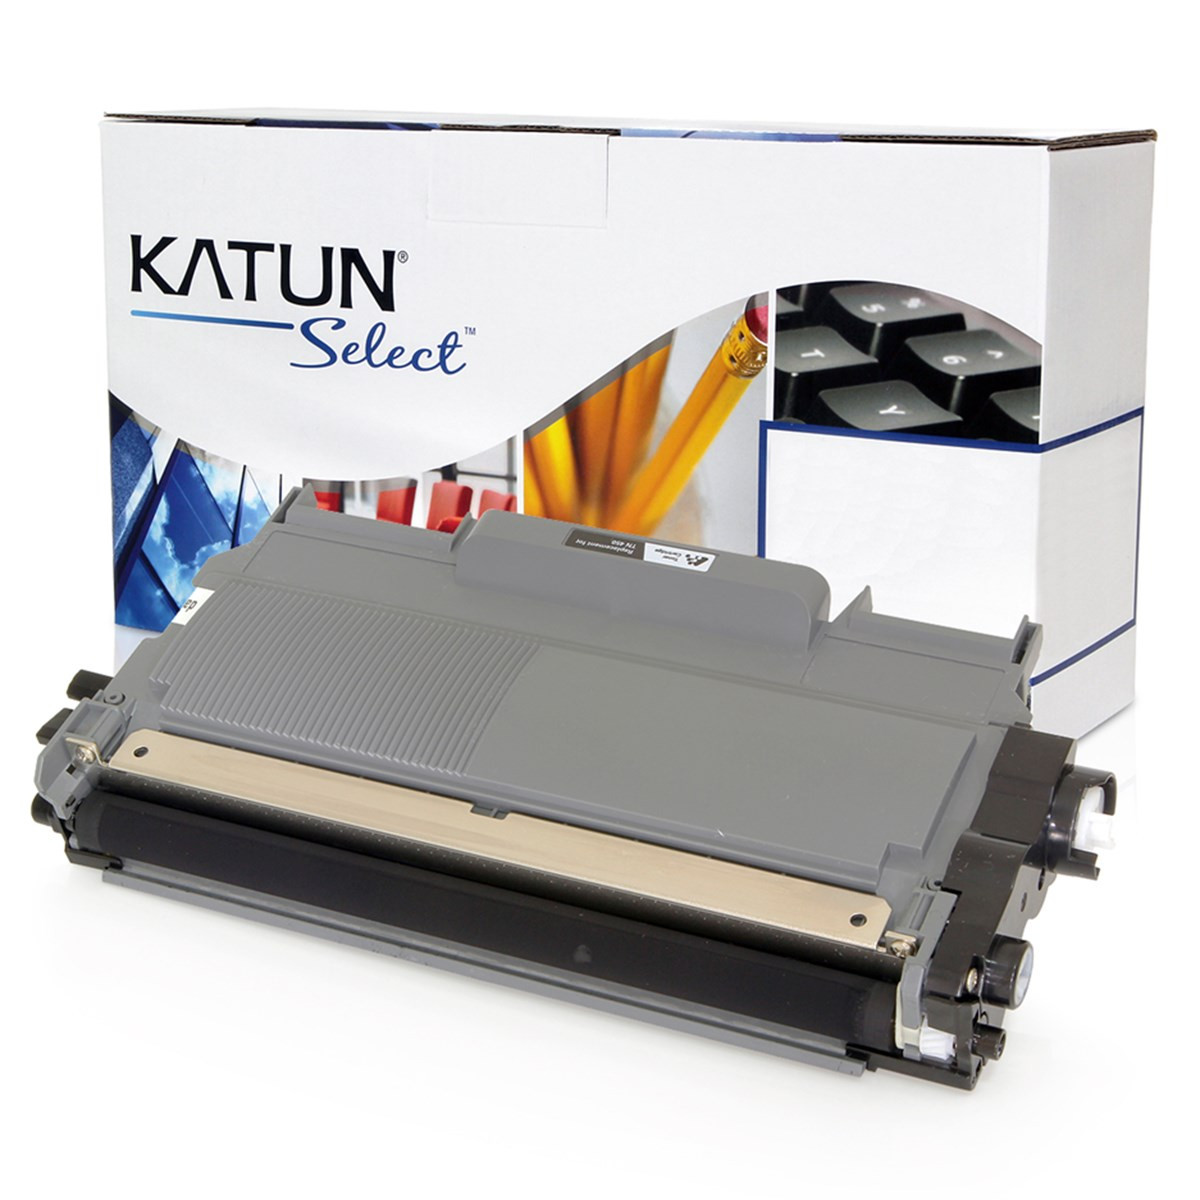 Toner Compatível com Brother TN410 | DCP7055 HL2230 MFC7460DN | Katun Select 2.6k